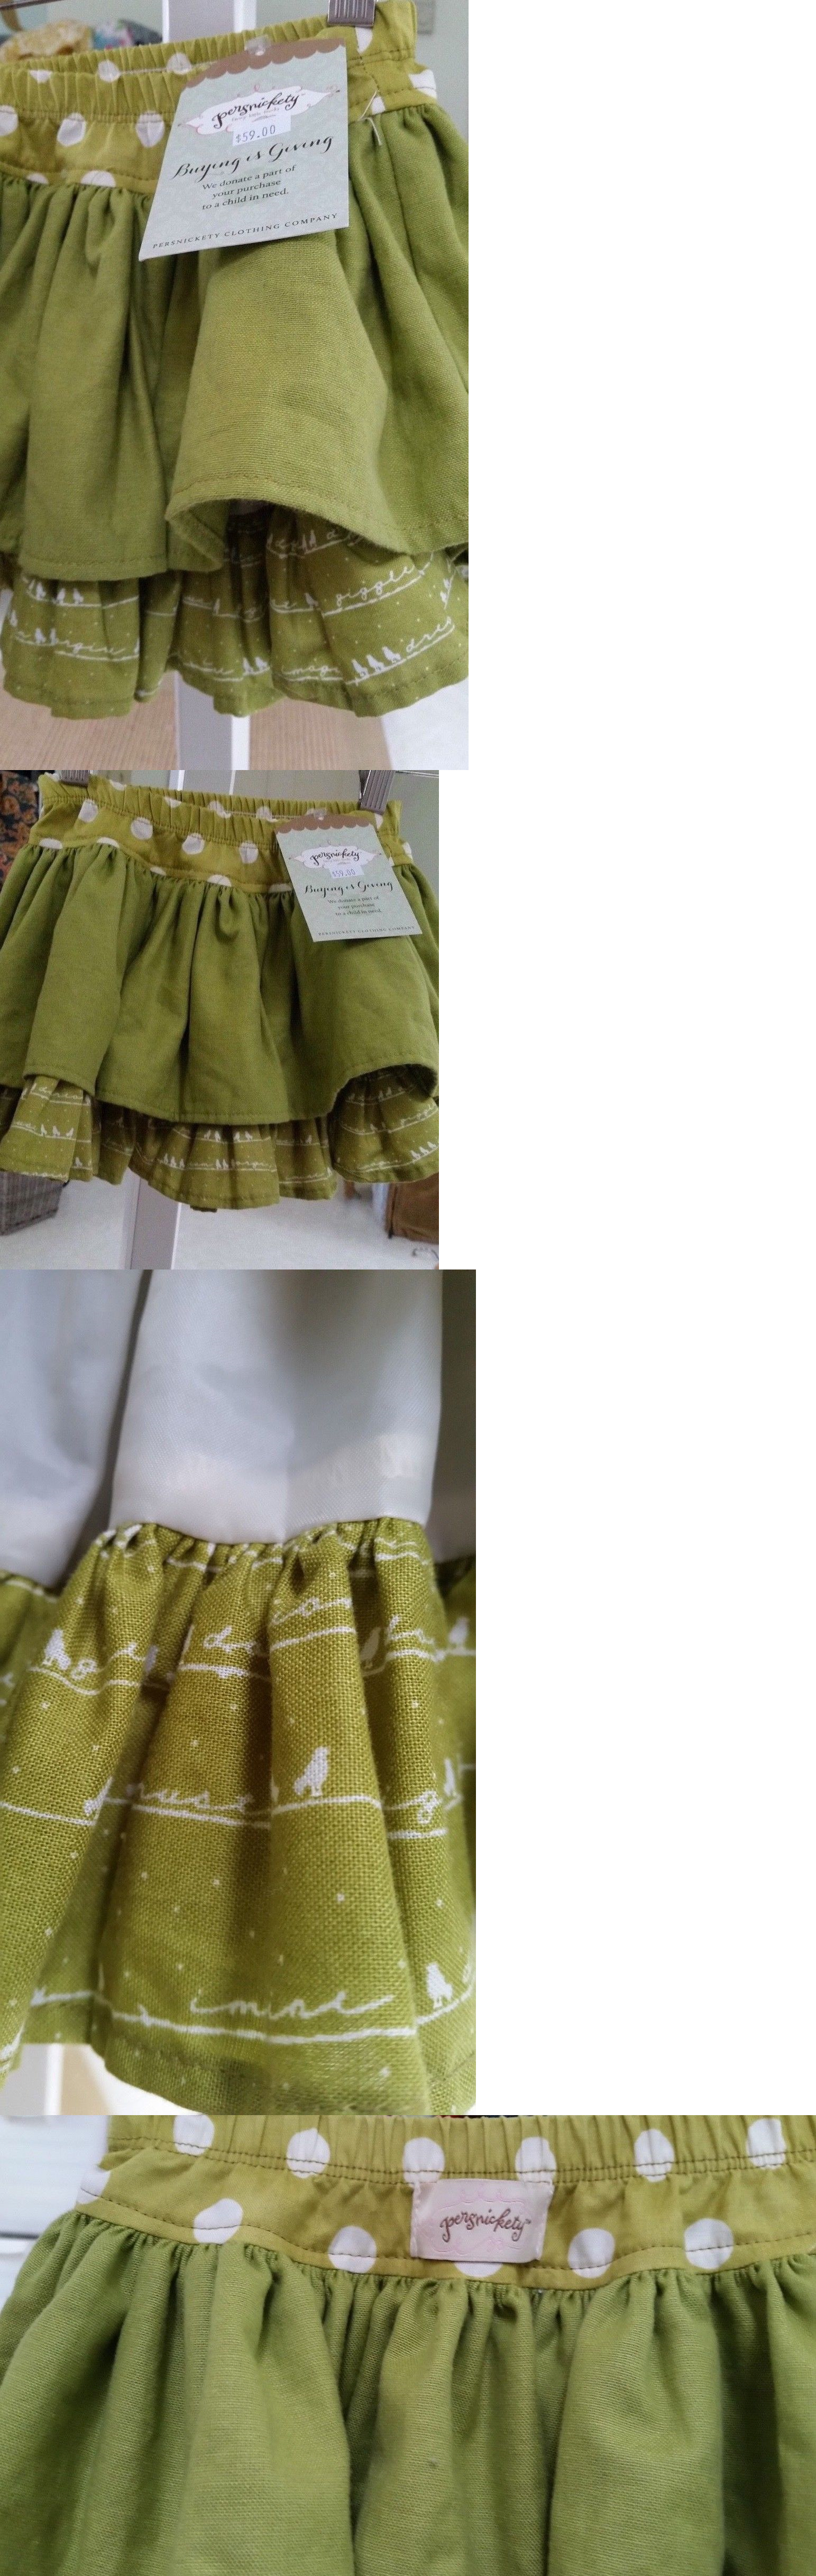 Skirts 147214: Persnickety Girls Green Apple Lined Ruffle Full Skirt ...